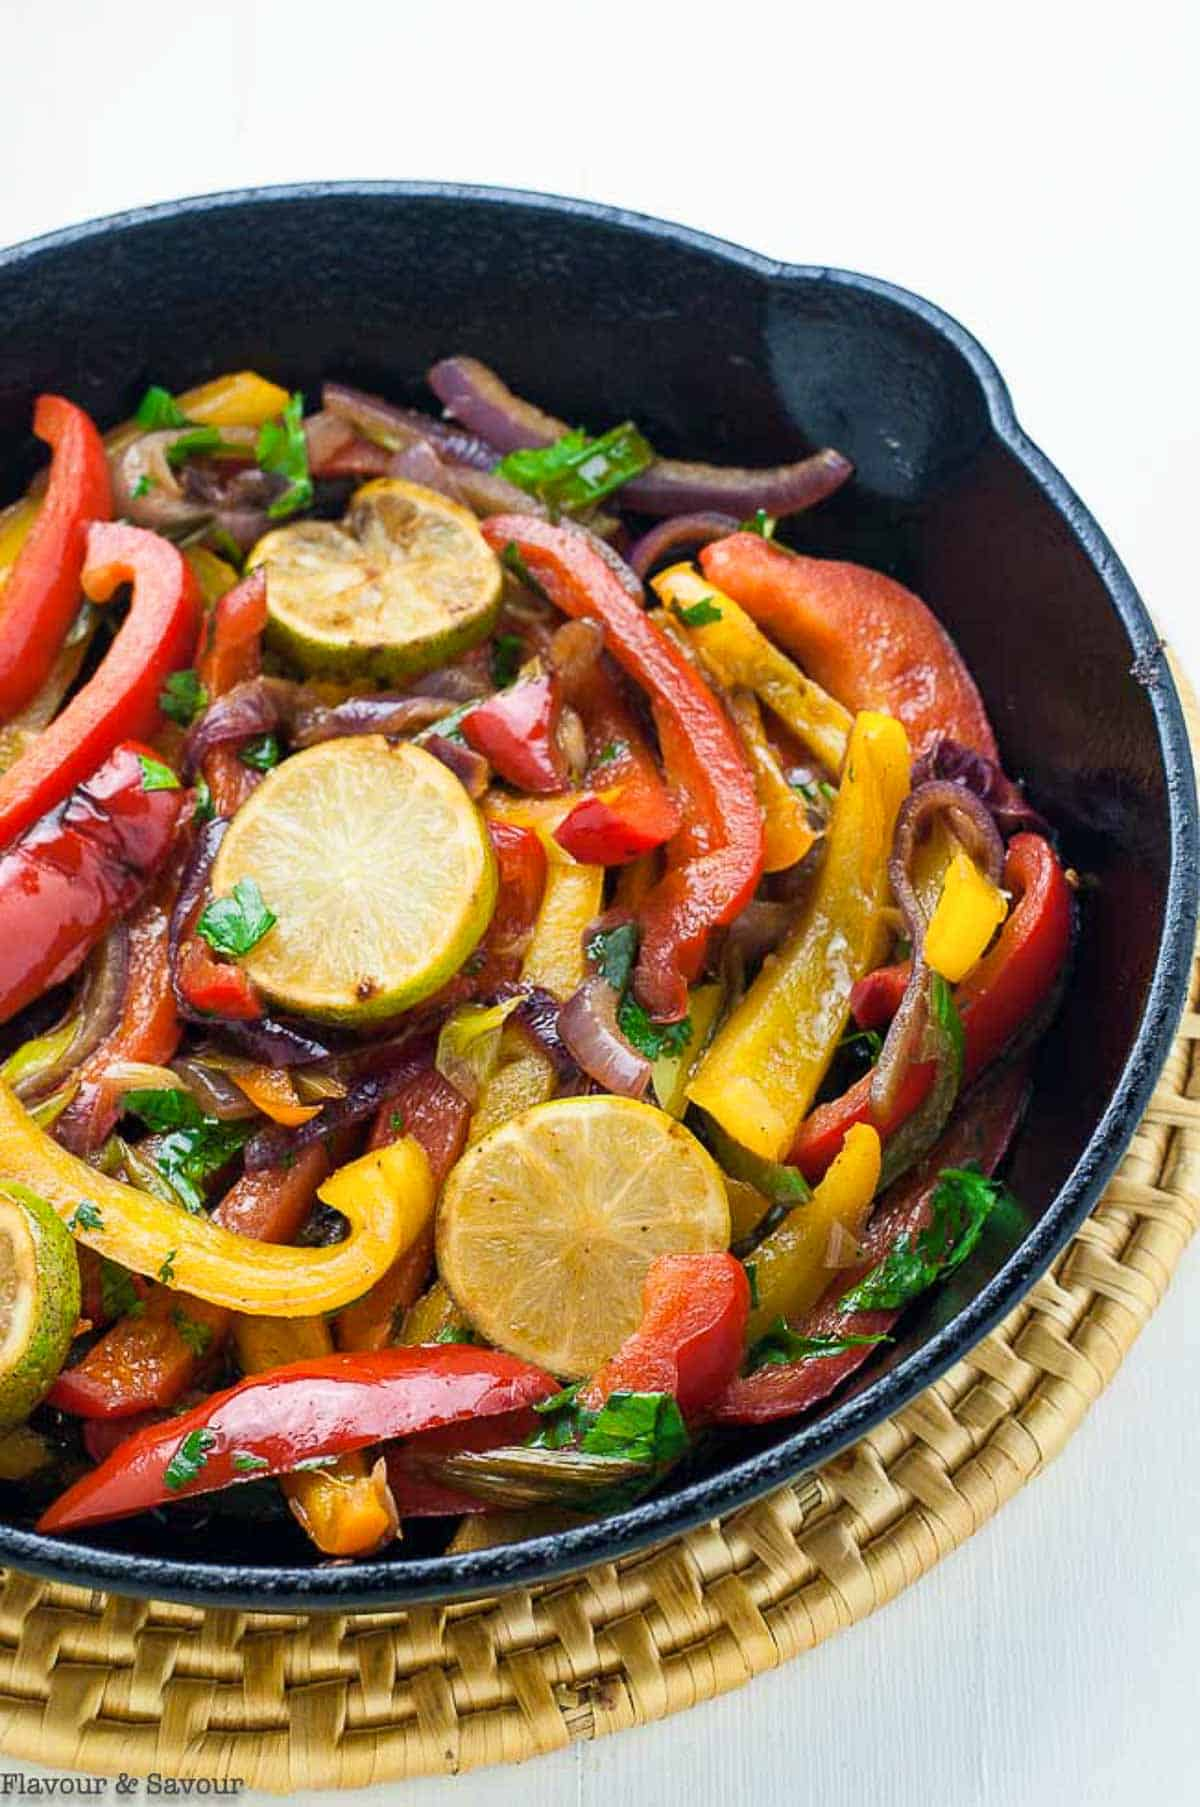 Sautéed peppers and onions in a cast iron pan for Fajita Salad